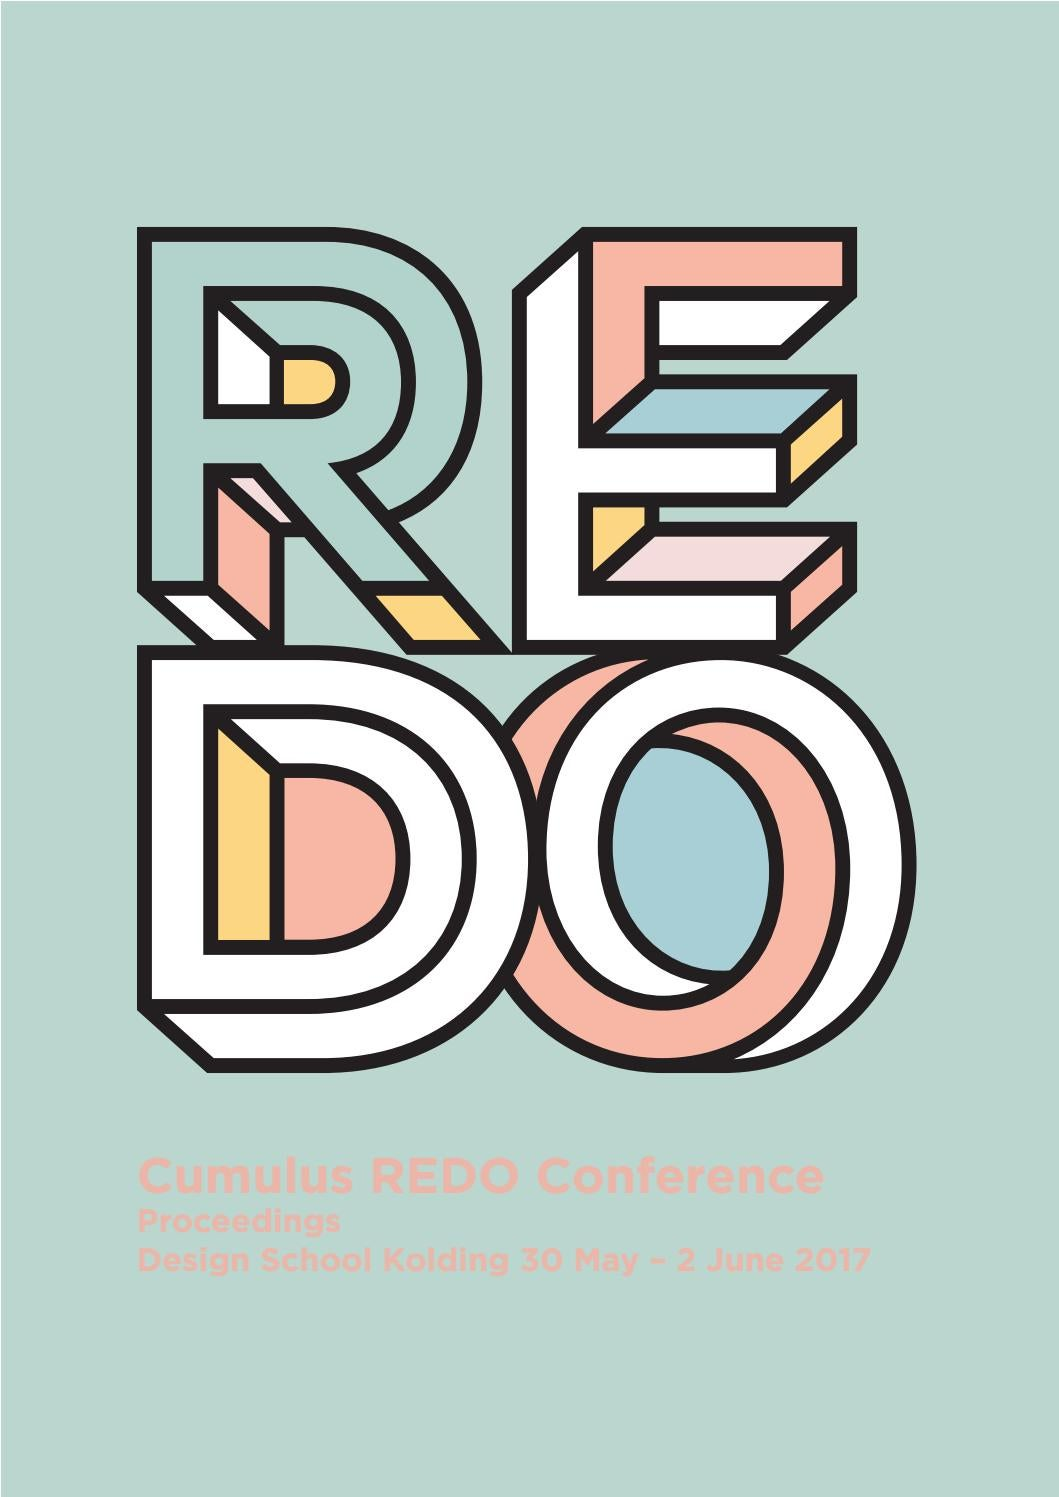 Superstudio Erfahrungen Redo Cumulus Conference Proceedings